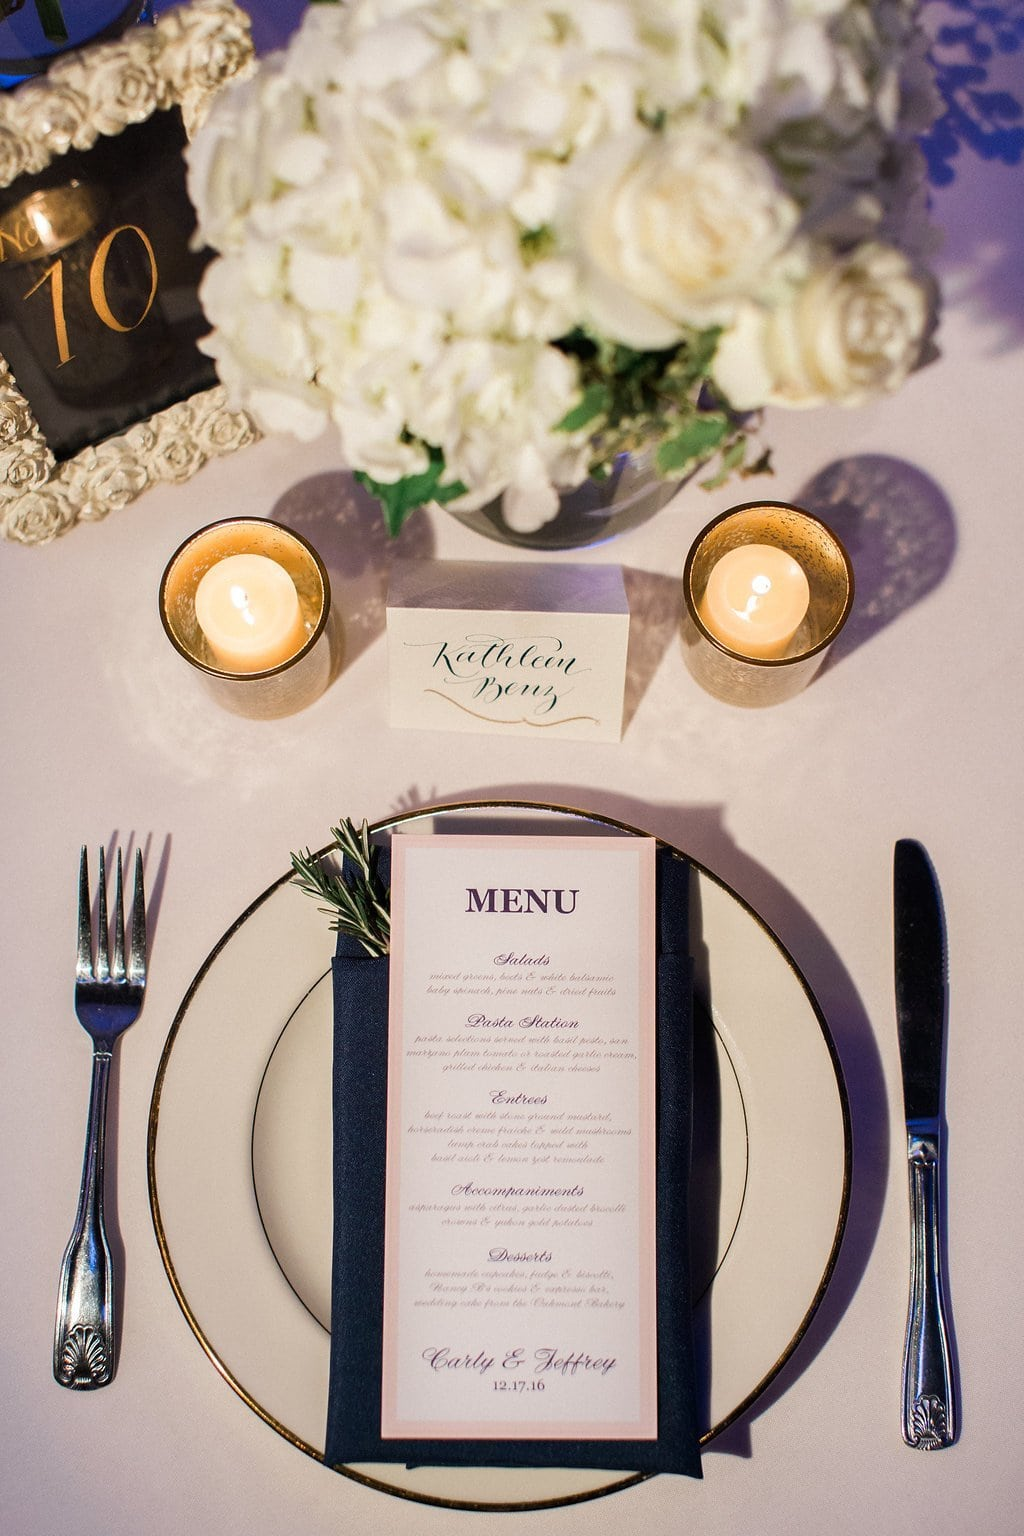 Table setting with calligraphy escort card, dinner menu, and a sprig or rosemary - J Verno Studios Winter Wedding